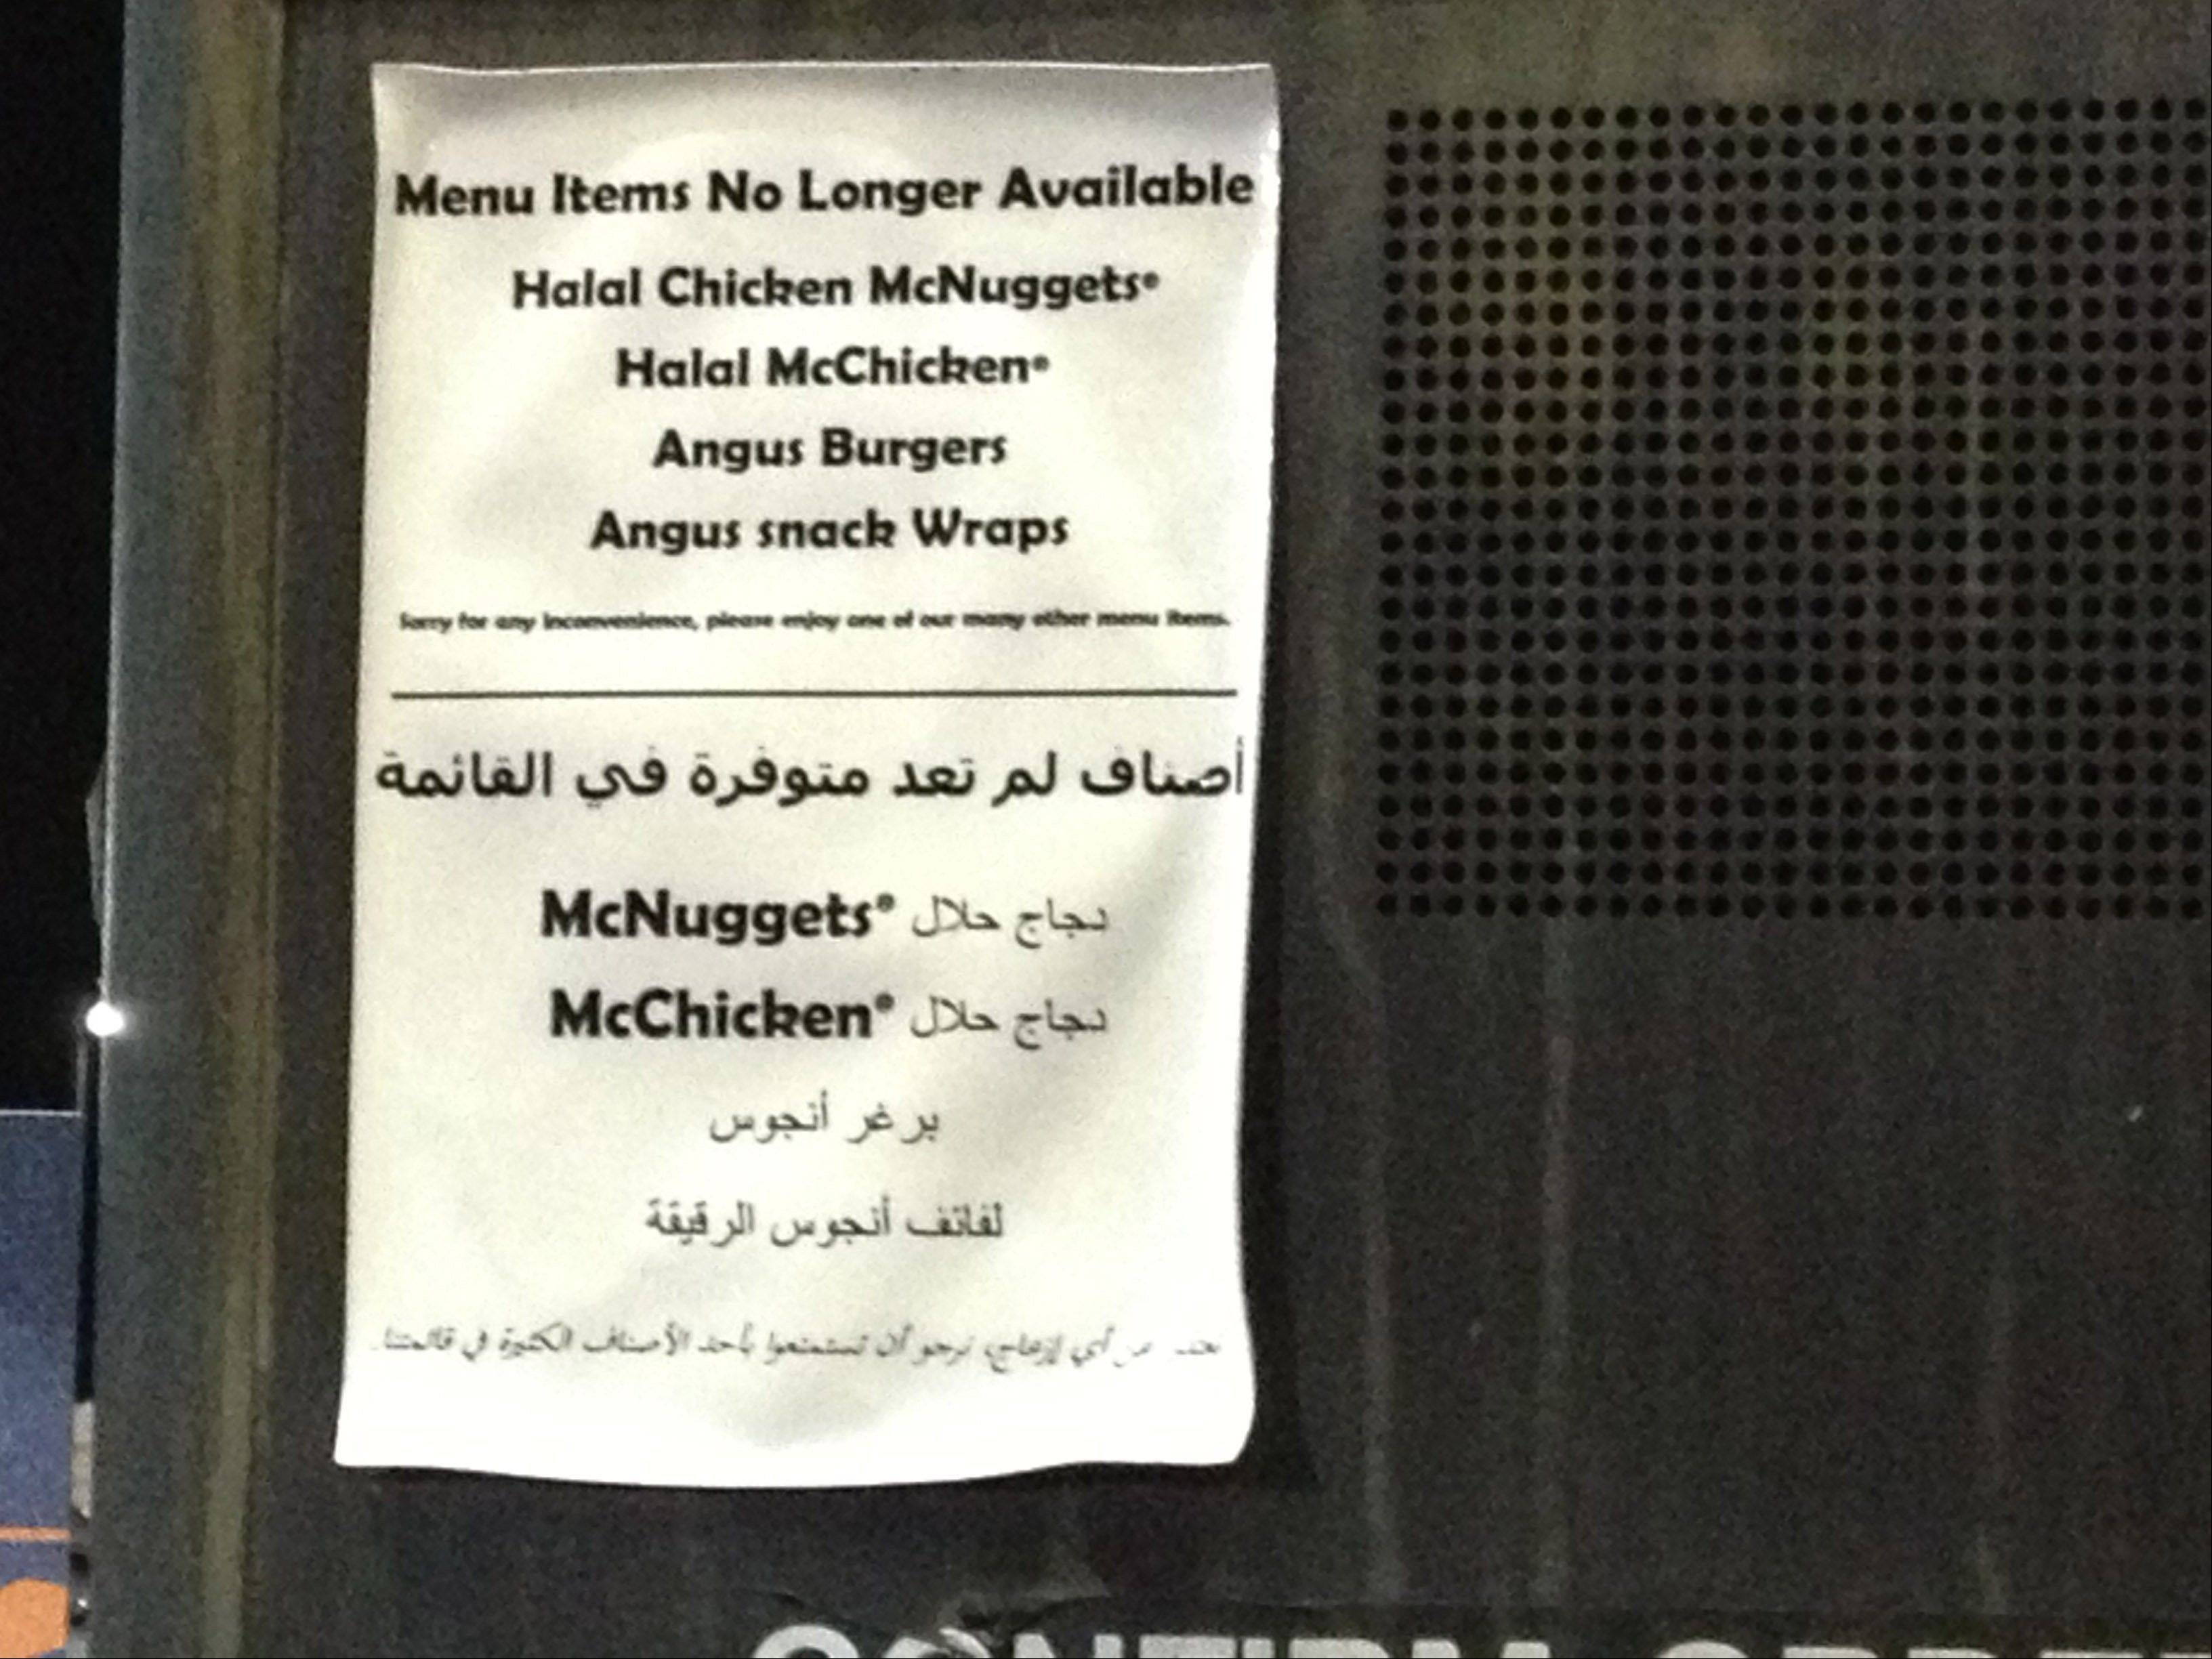 Bilingual signs in English and Arabic at a McDonald�s restaurant in Dearborn, Mich., announce they no longer sell halal products. The only two McDonald�s restaurants in the nation serving food prepared according to Islamic law have stopped doing so after a $700,000 legal settlement.